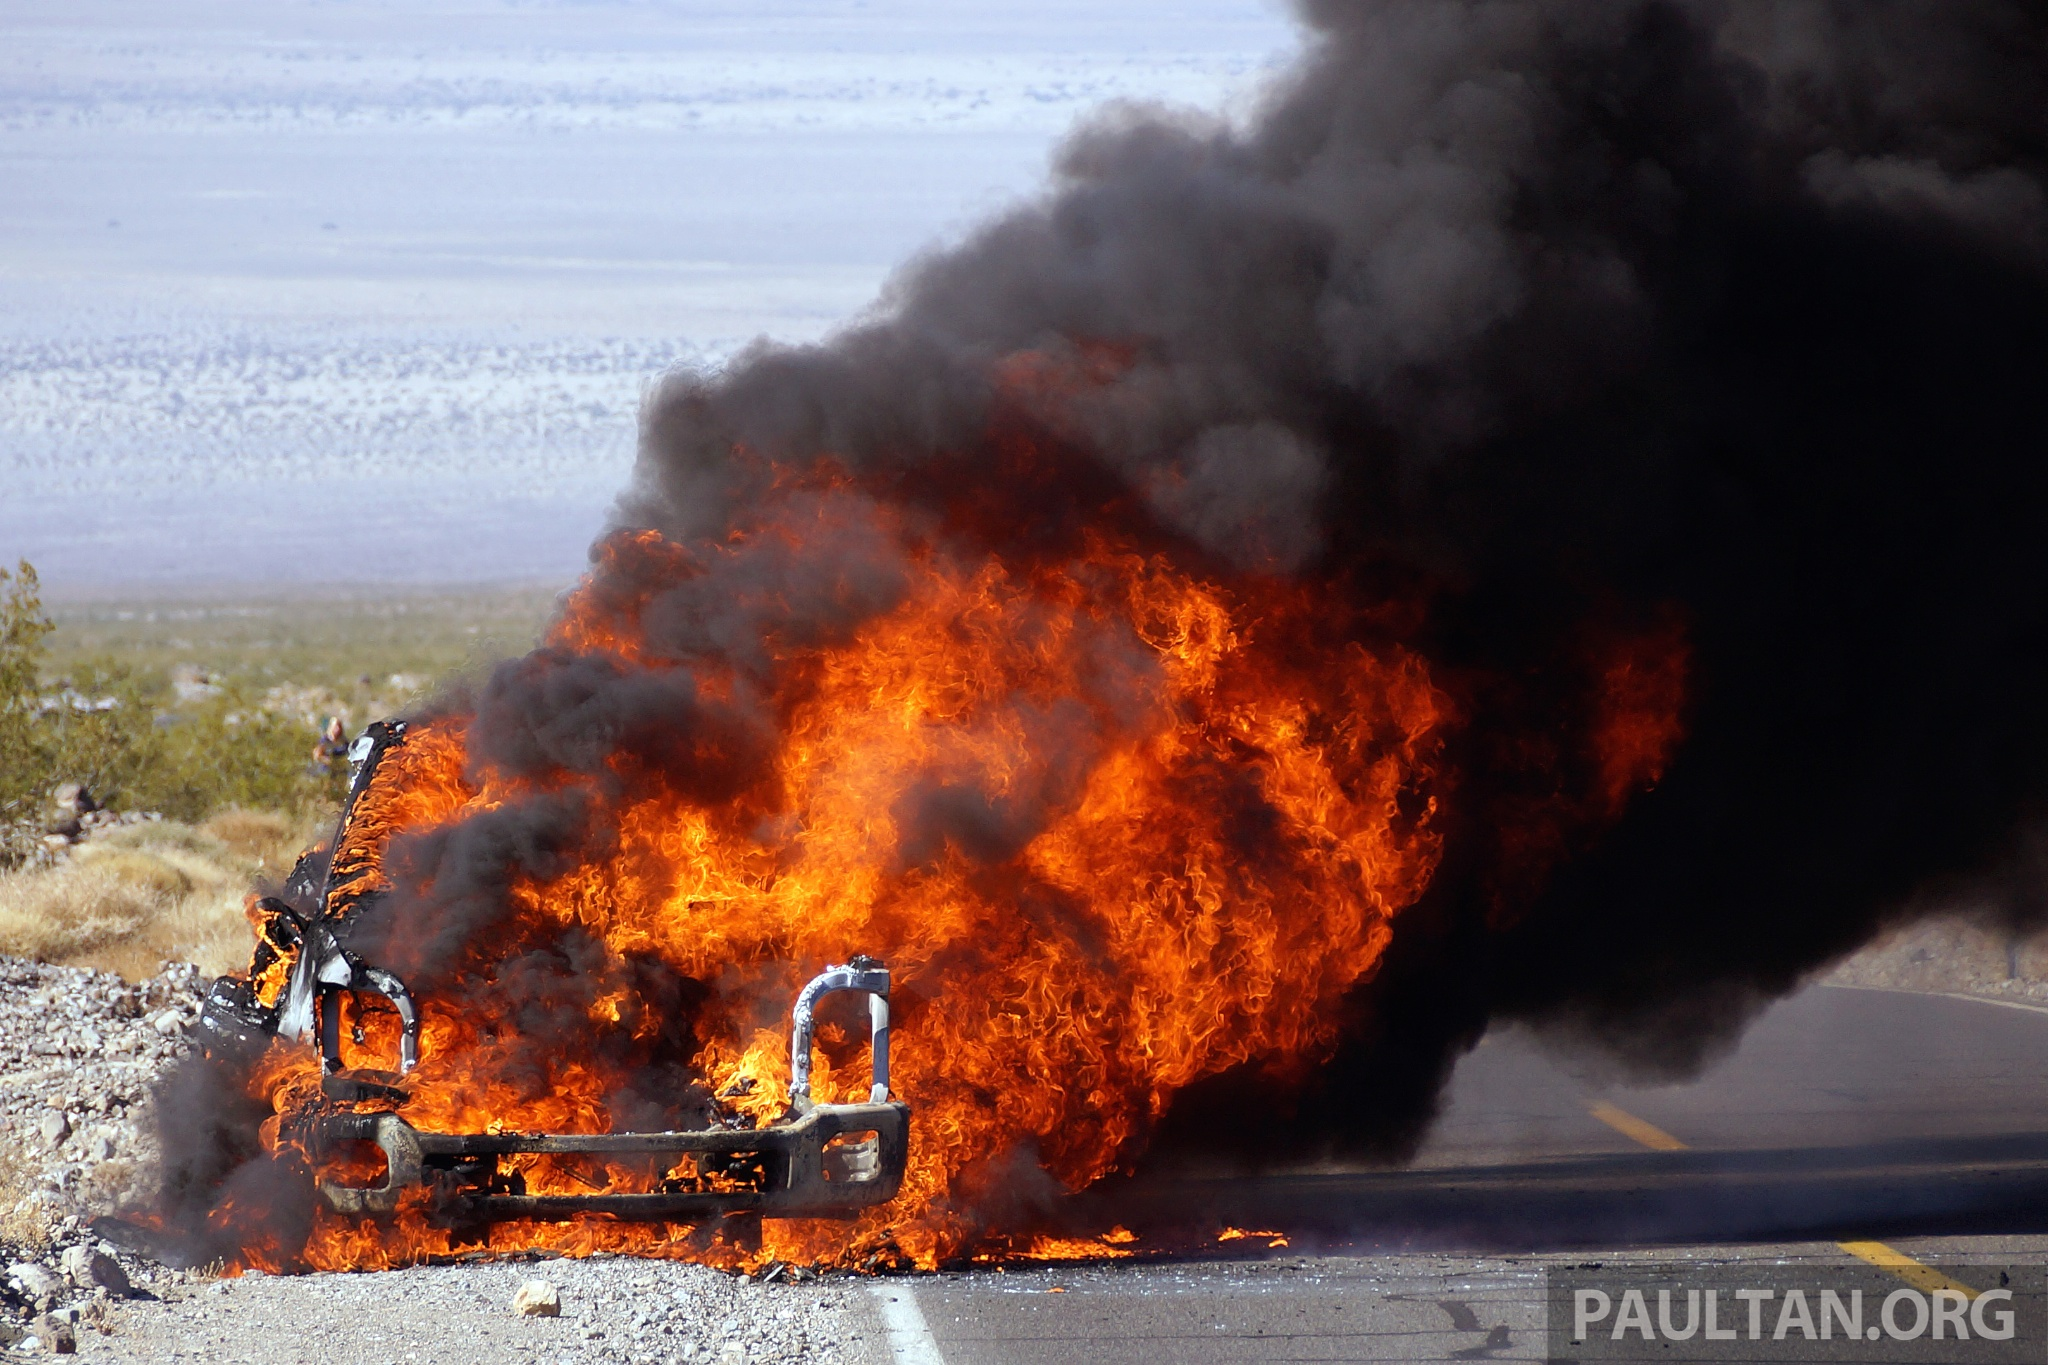 SPYSHOTS: Ford Super Duty truck on fire in the desert Image 261865